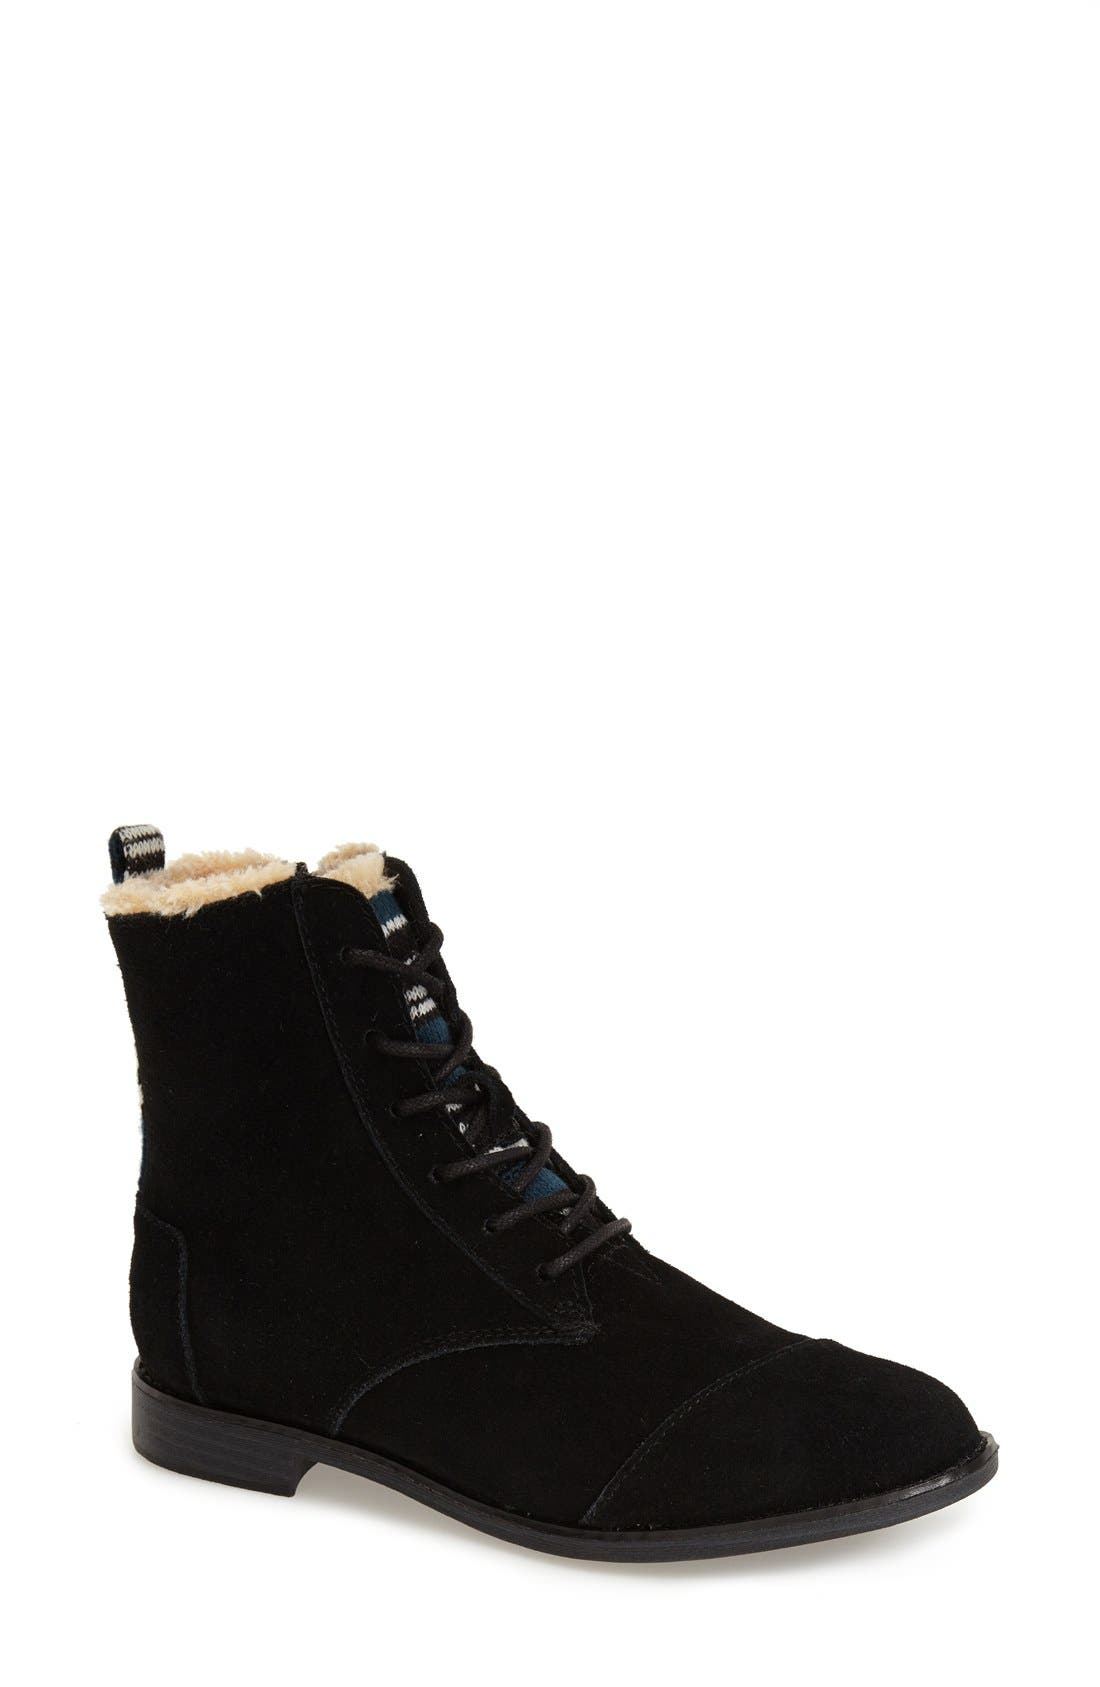 Alternate Image 1 Selected - TOMS 'Alpa'Water Resistant Suede Boot (Women)